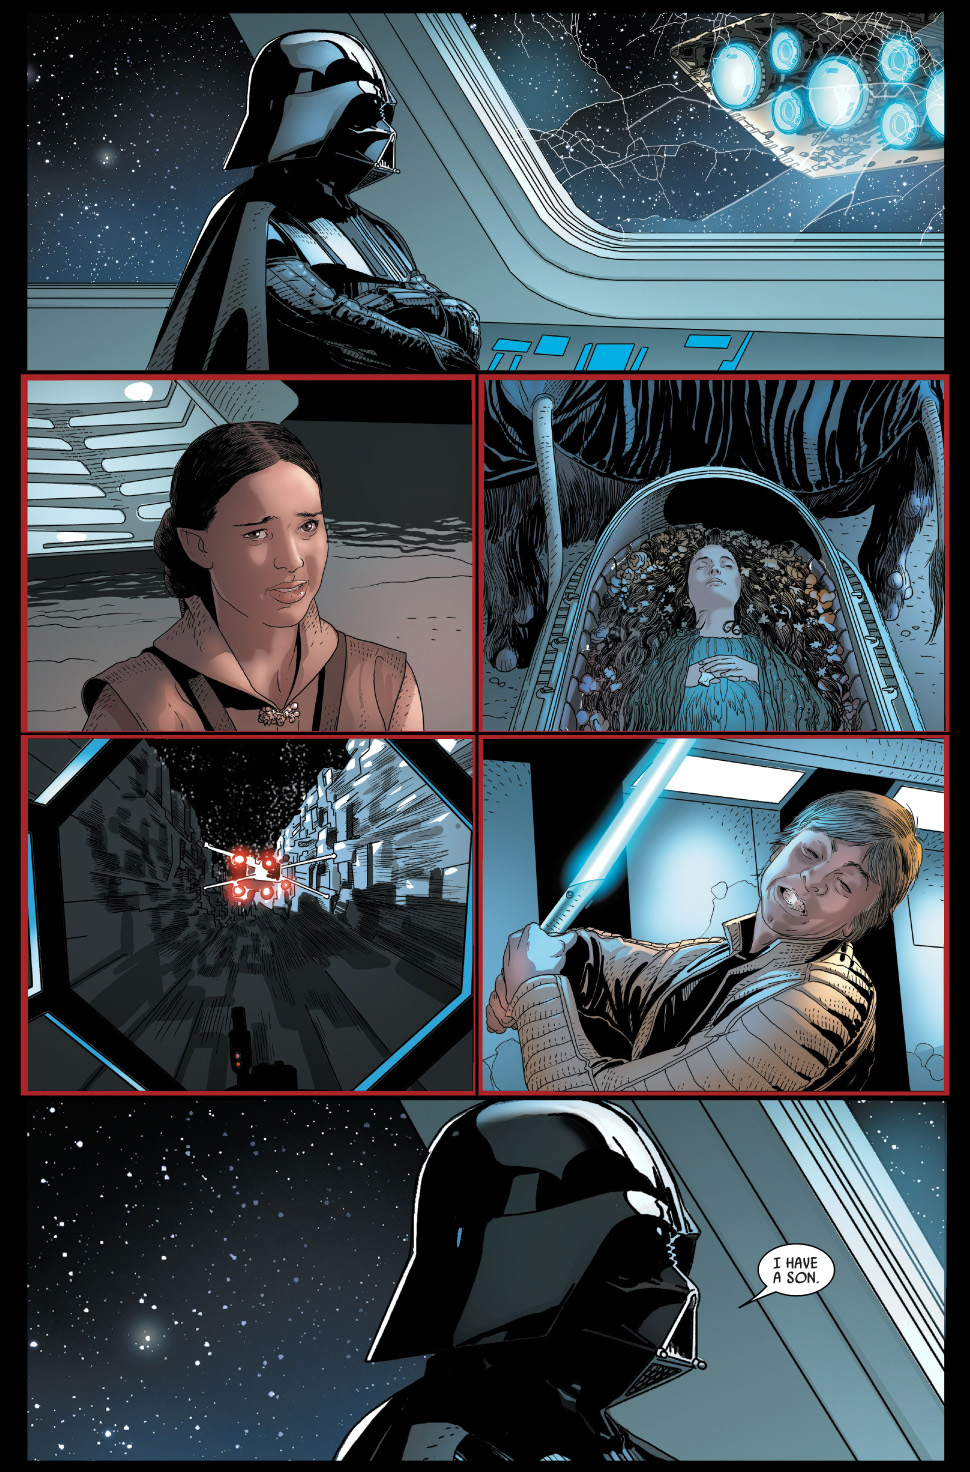 darth vader learns luke is his son comicnewbies. Black Bedroom Furniture Sets. Home Design Ideas